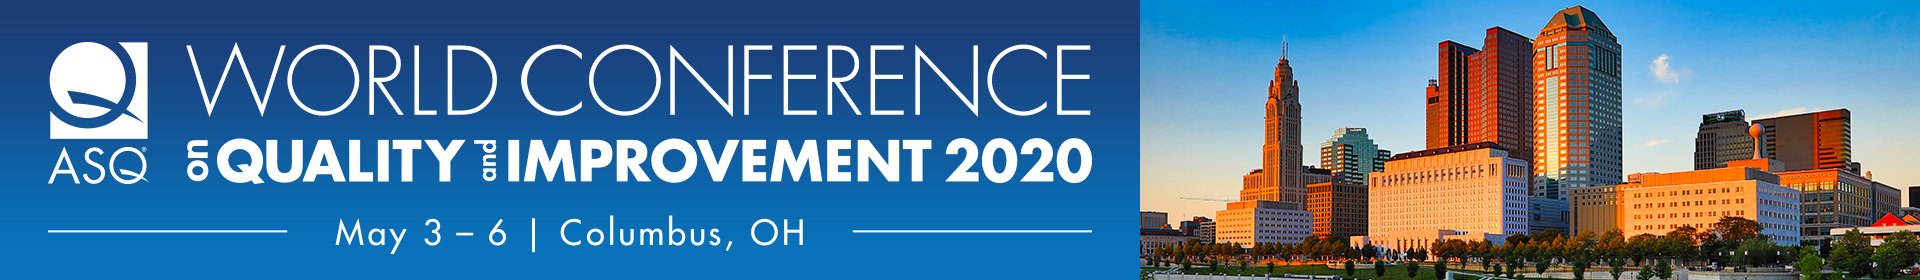 2020 World Conference on Quality and Improvement  Event Banner